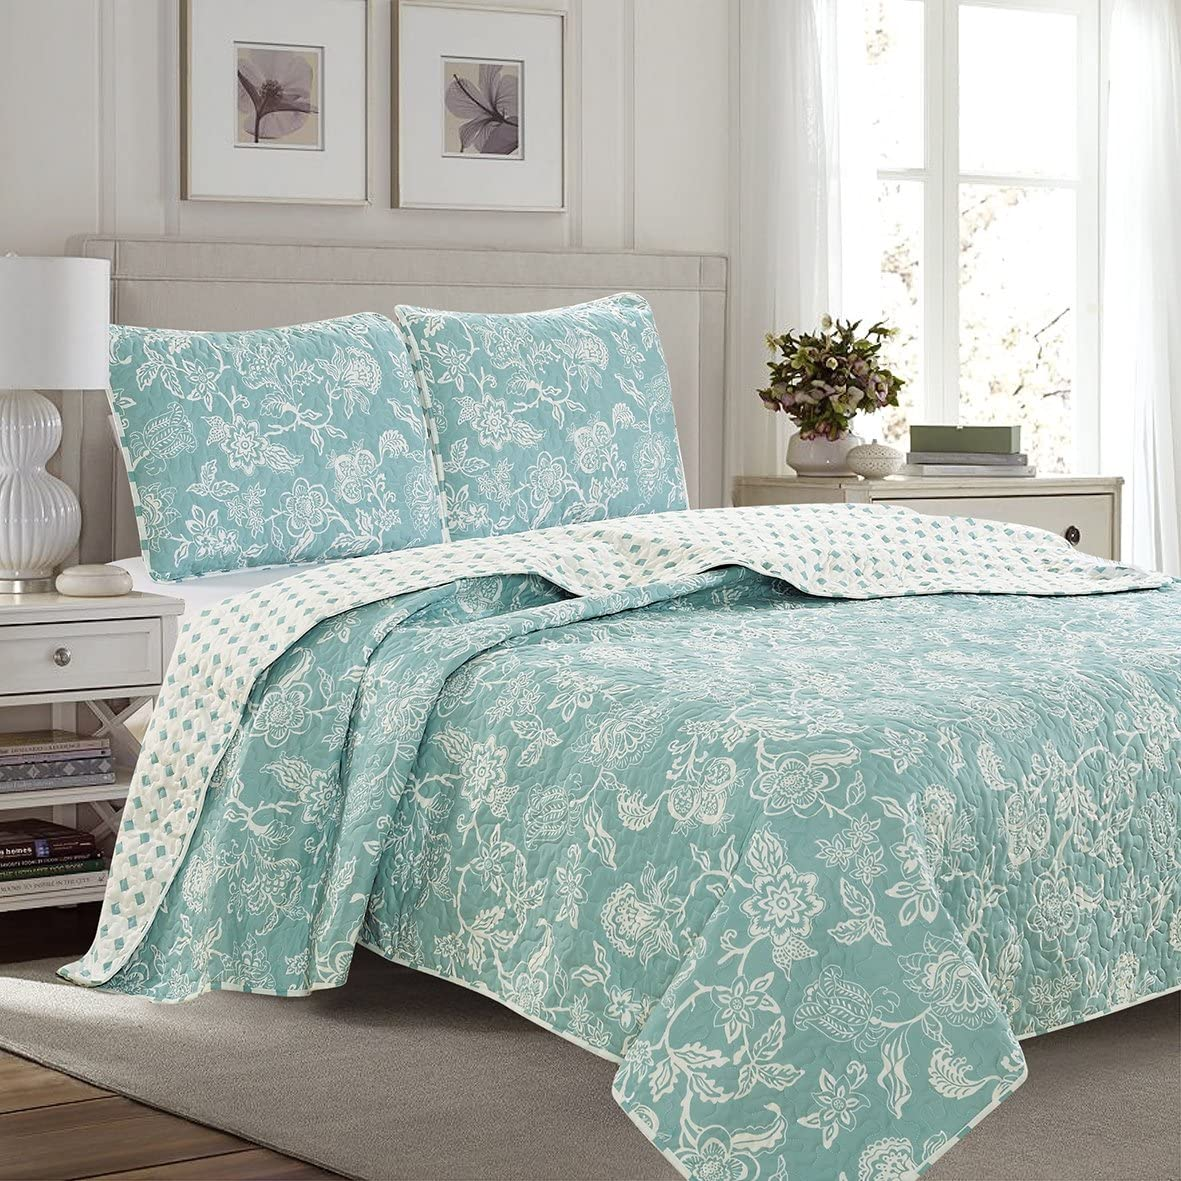 3 Piece Reversible Quilt Set With Shams All Season Bedspread With Floral Print Pattern In Contemporary Colors Emma Collection By Great Bay Home Brand Full Queen Blue Kitchen Dining